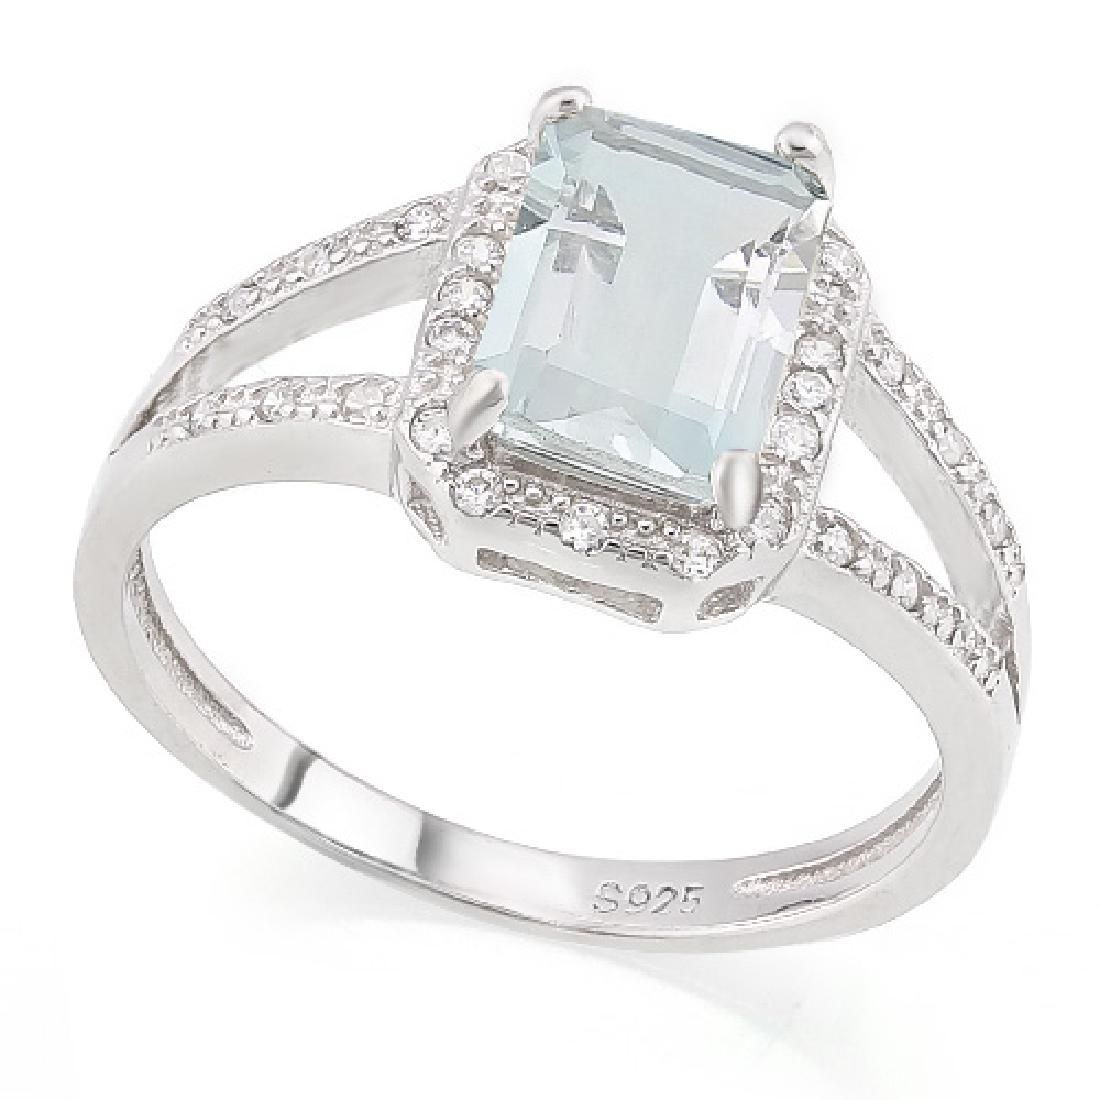 Emerald Cut Aquamarine Ring with White Sapphires in